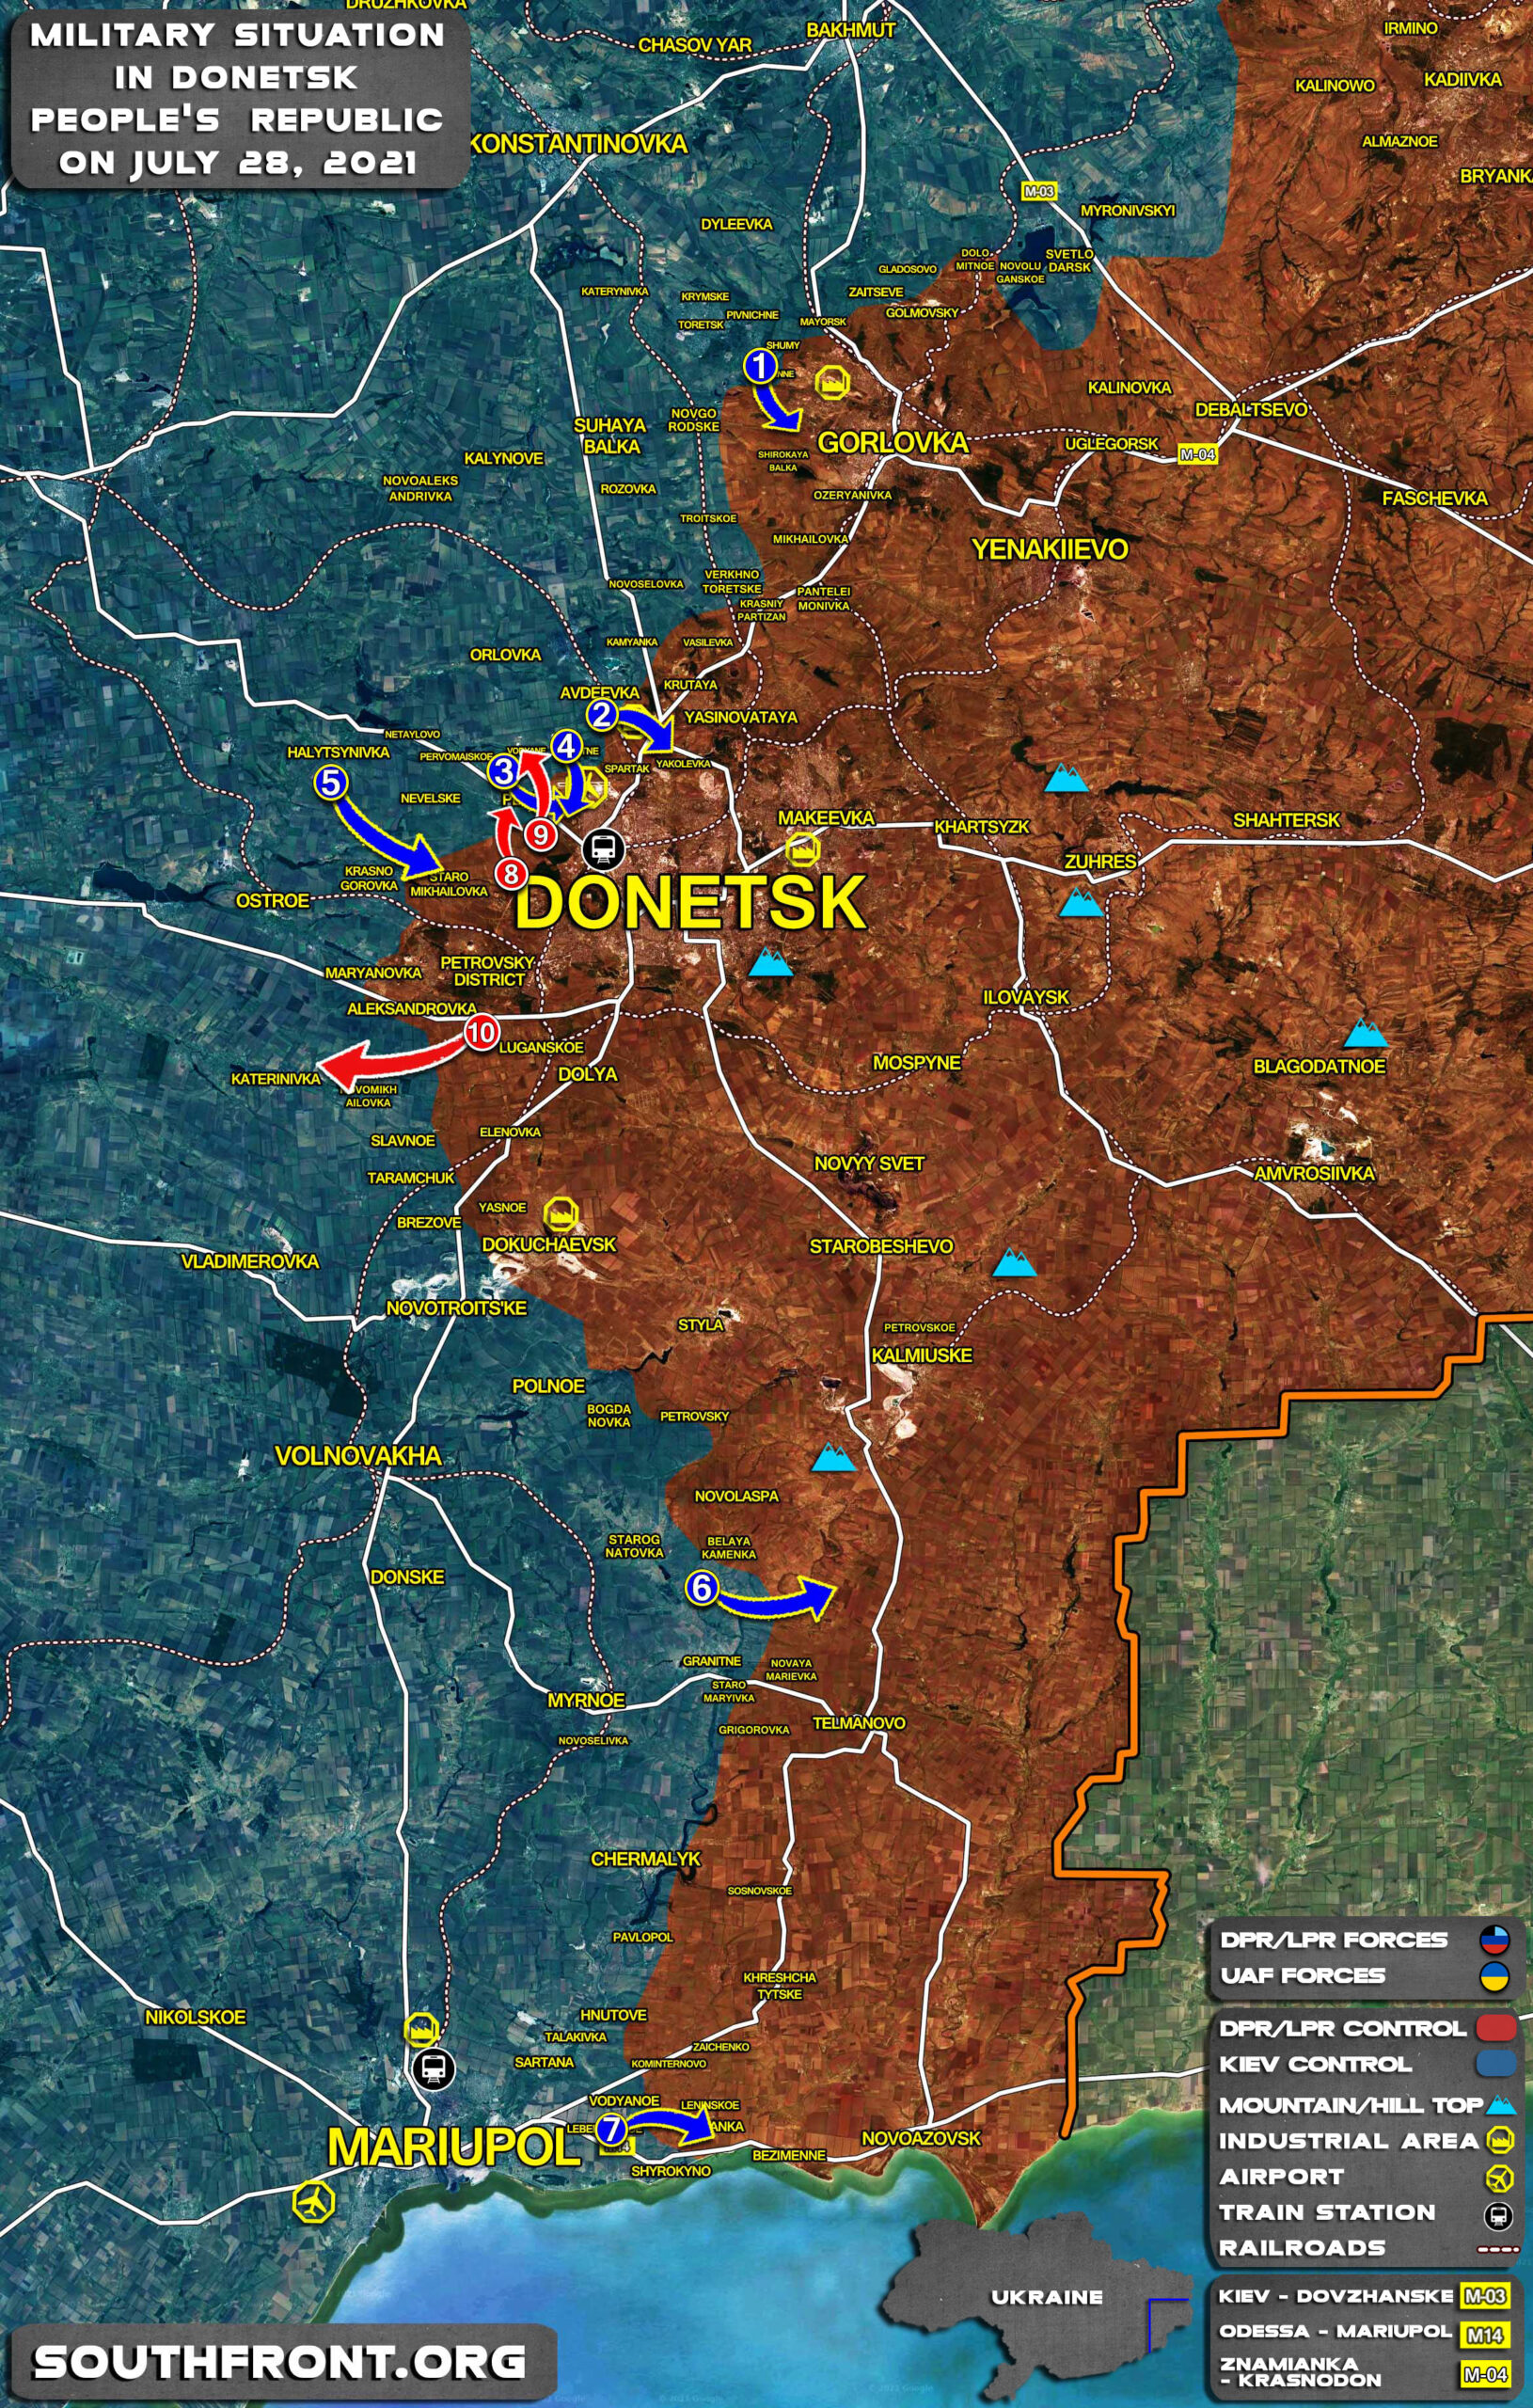 Military Situation In Donetsk People's Republic On July 28, 2021 (Map Update)